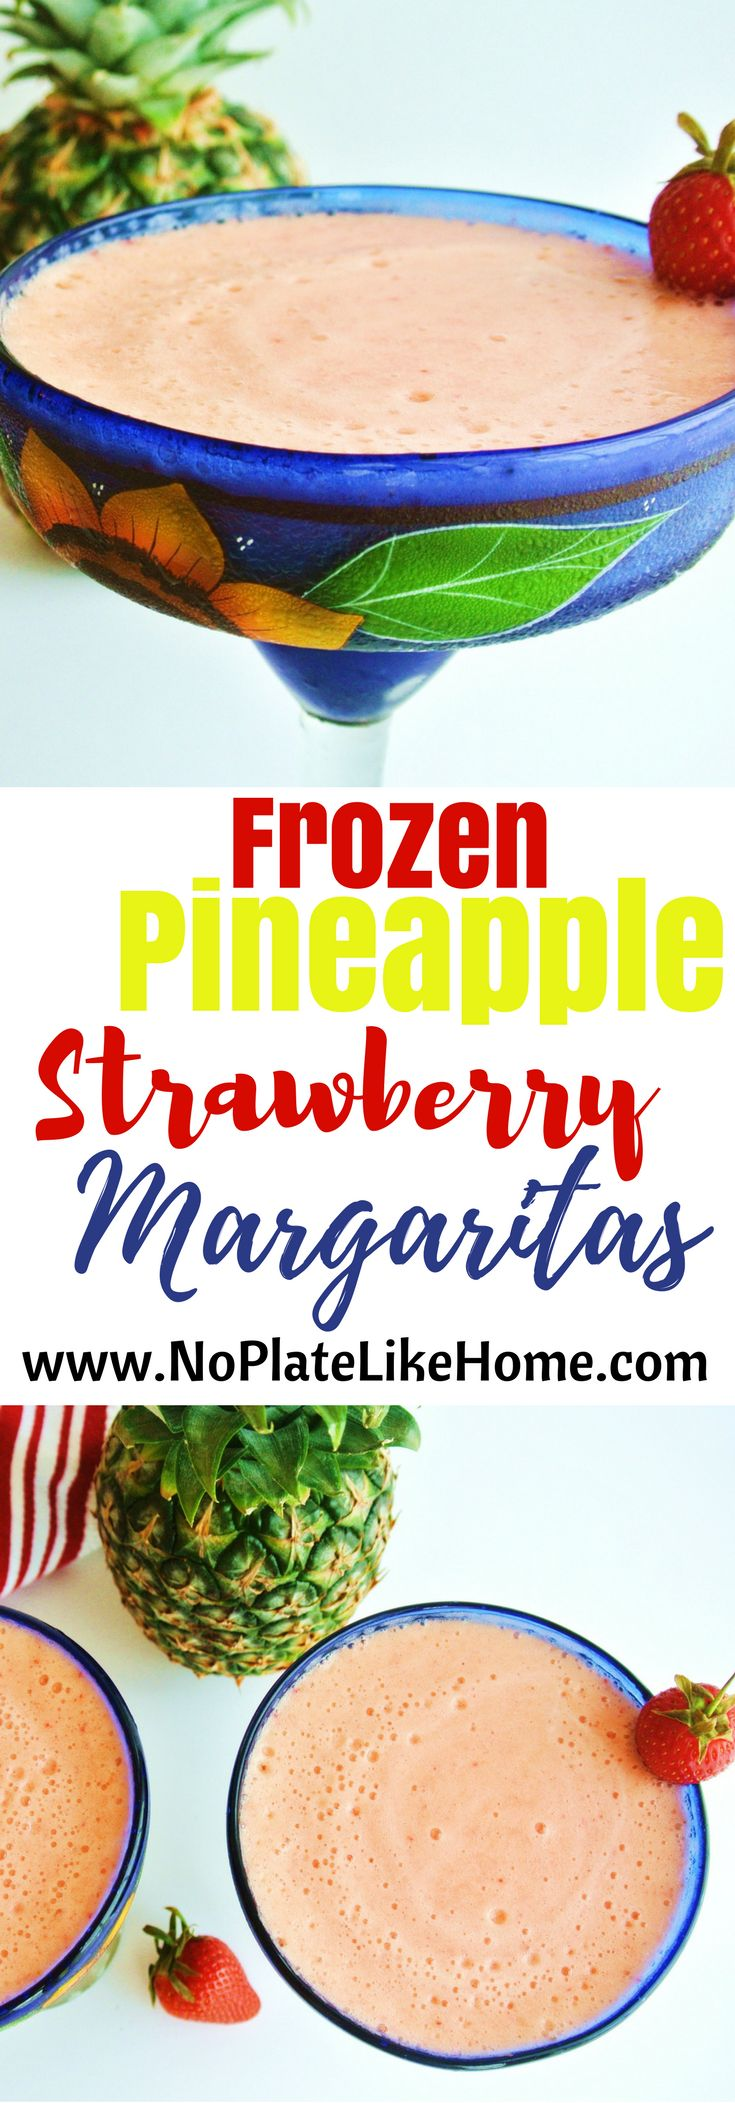 Use up your leftover fruit to make this easy Frozen Pineapple Strawberry Margarita this summer! It is made with fresh pineapple and strawberries, OJ, white Tequila and Triple Sec. It is a refreshing cocktail to enjoy on a hot summer day and for deck parties! Pitcher recipe included. Pin it for later.